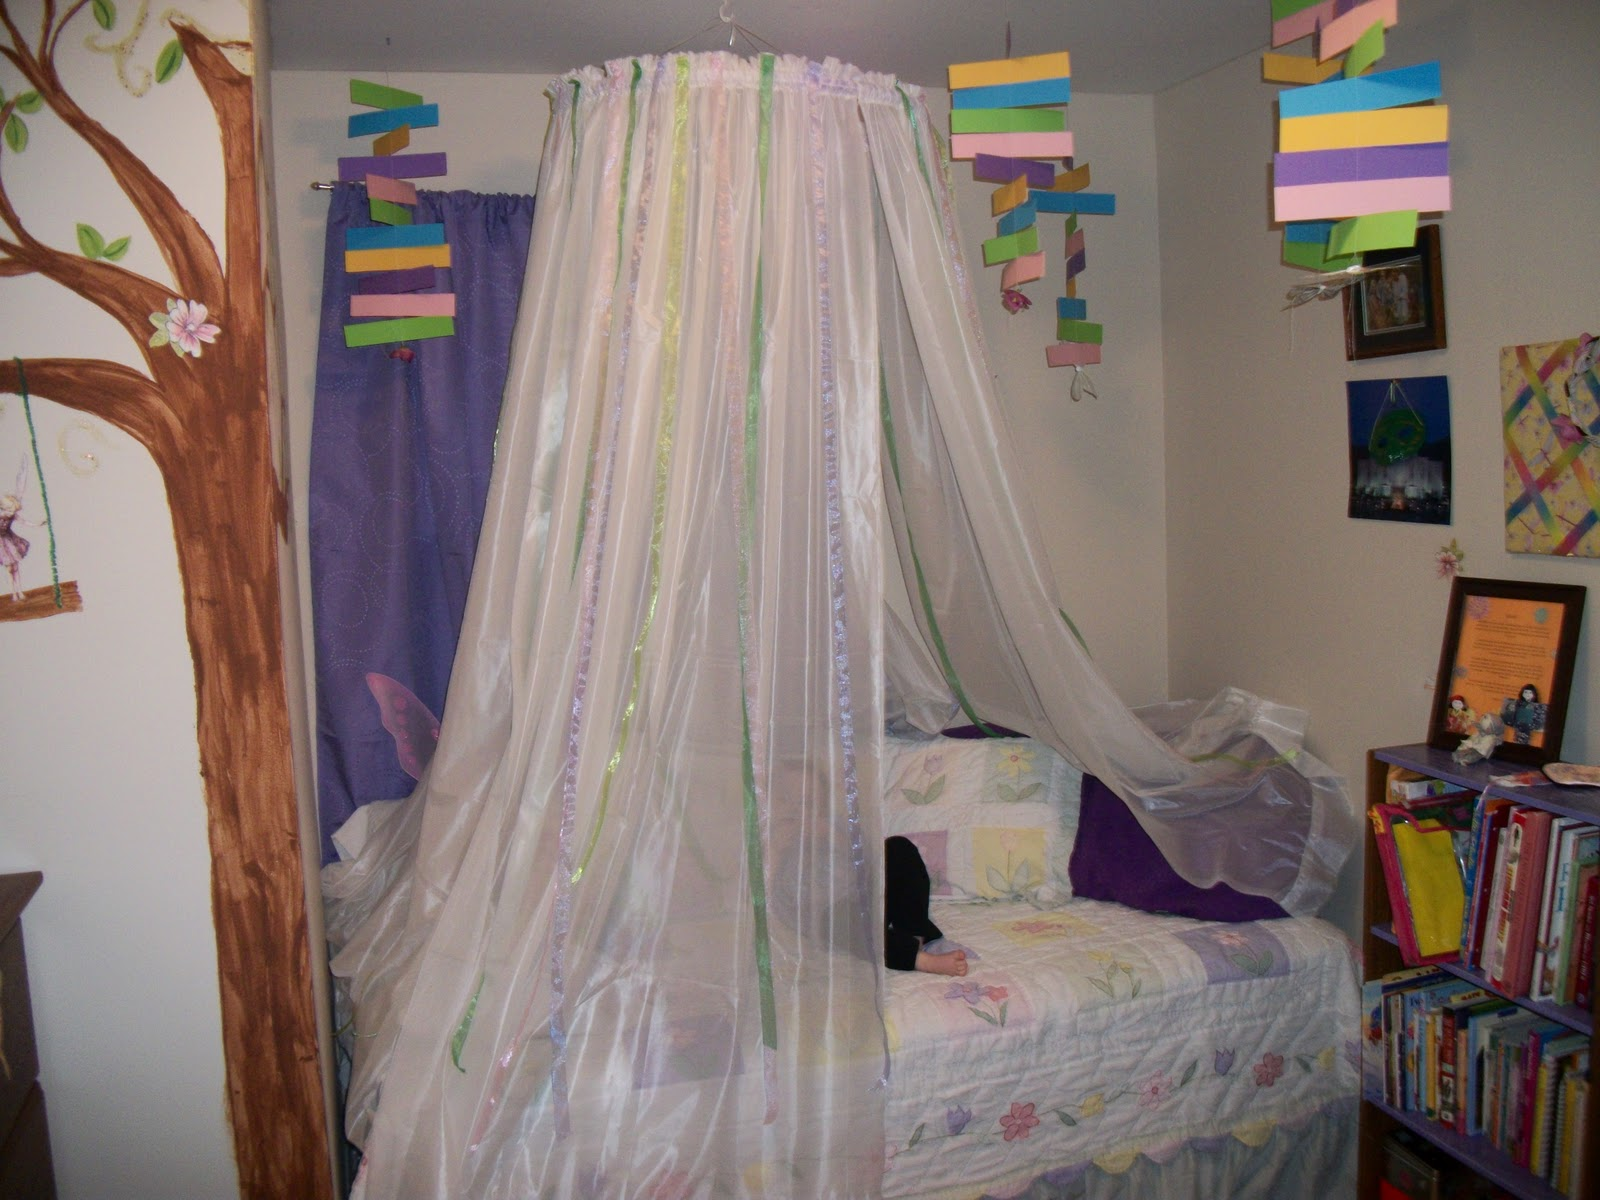 Froggy Flip Flops Bed Canopy From Hula Hoop